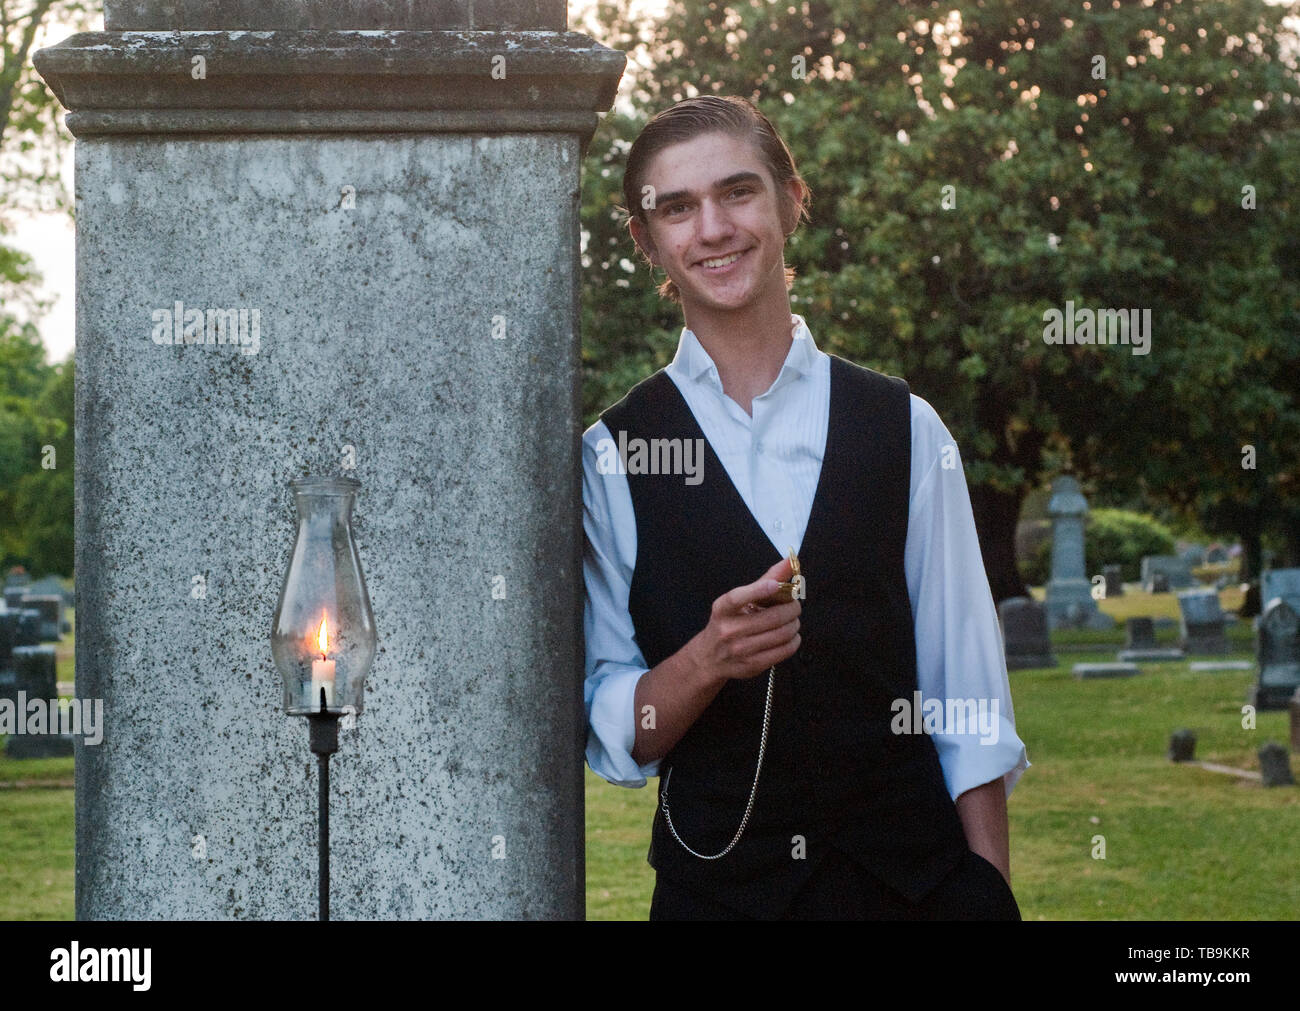 A teenager portrays a local character during 'Tales from the Crypt,' held at Friendship Cemetery in Columbus, Mississippi, April 16, 2010. - Stock Image